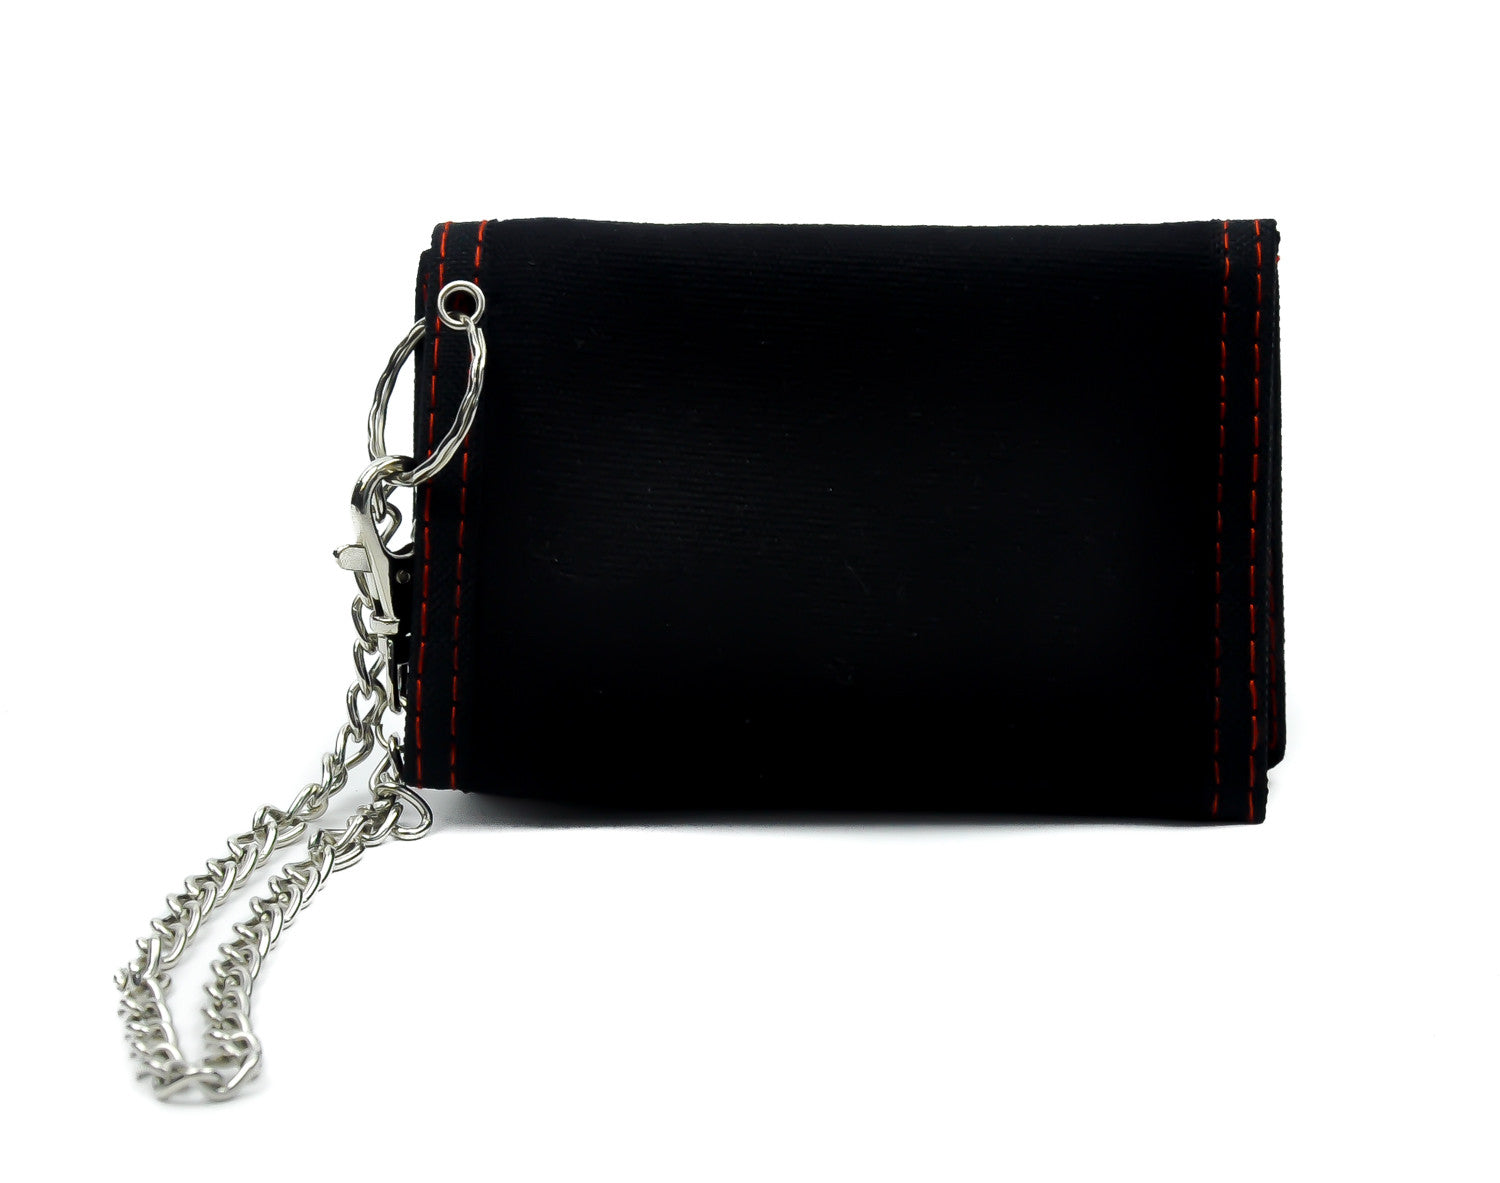 Angry Pig Tri-fold Wallet with Chain Alternative Clothing